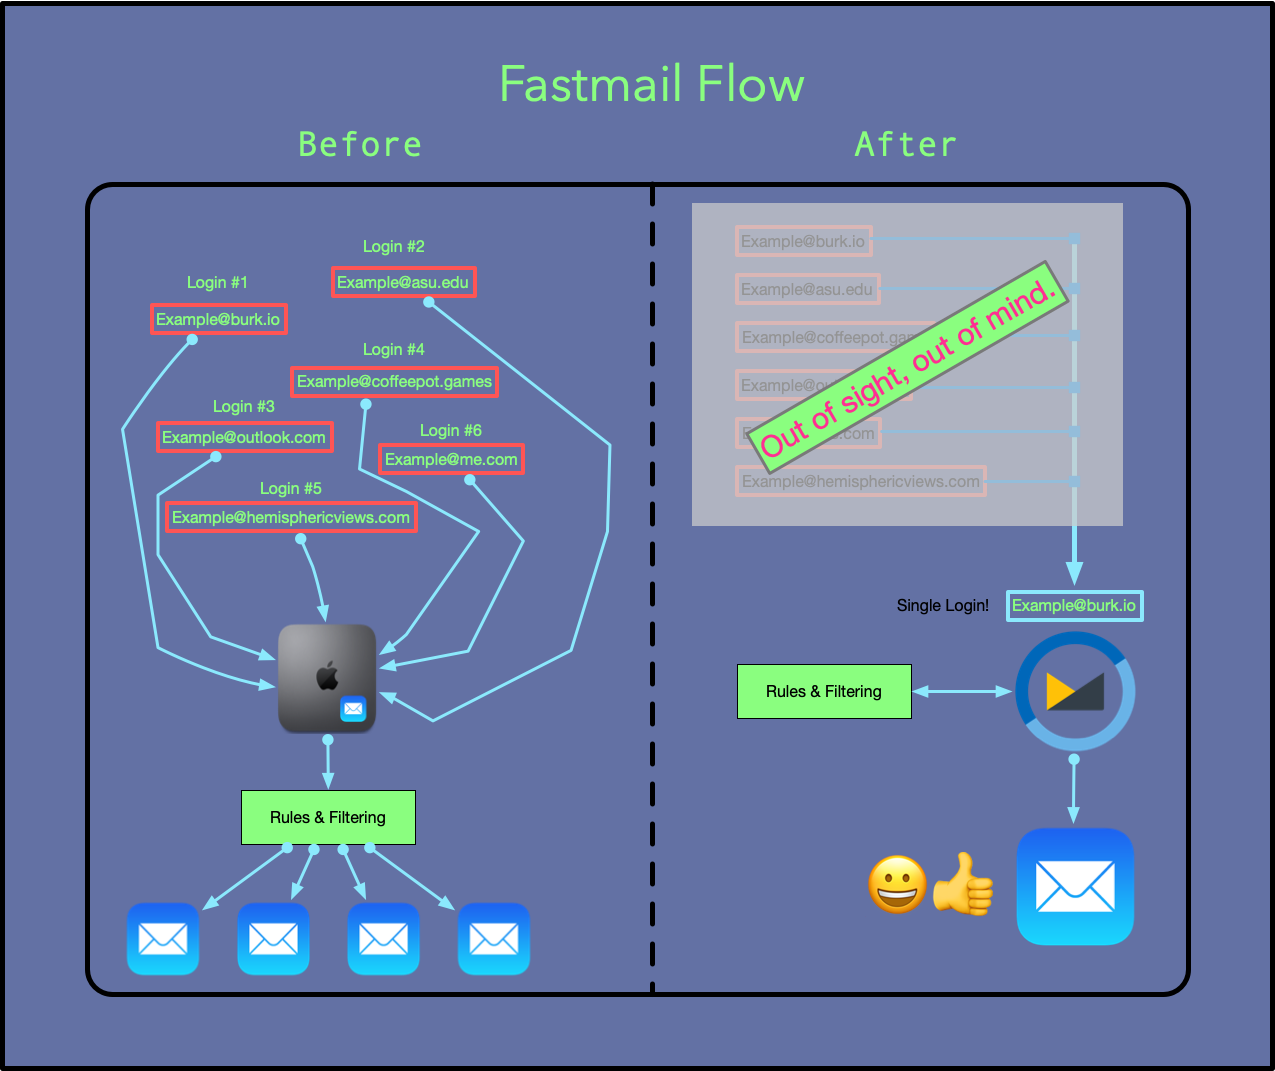 Fastmail Flow